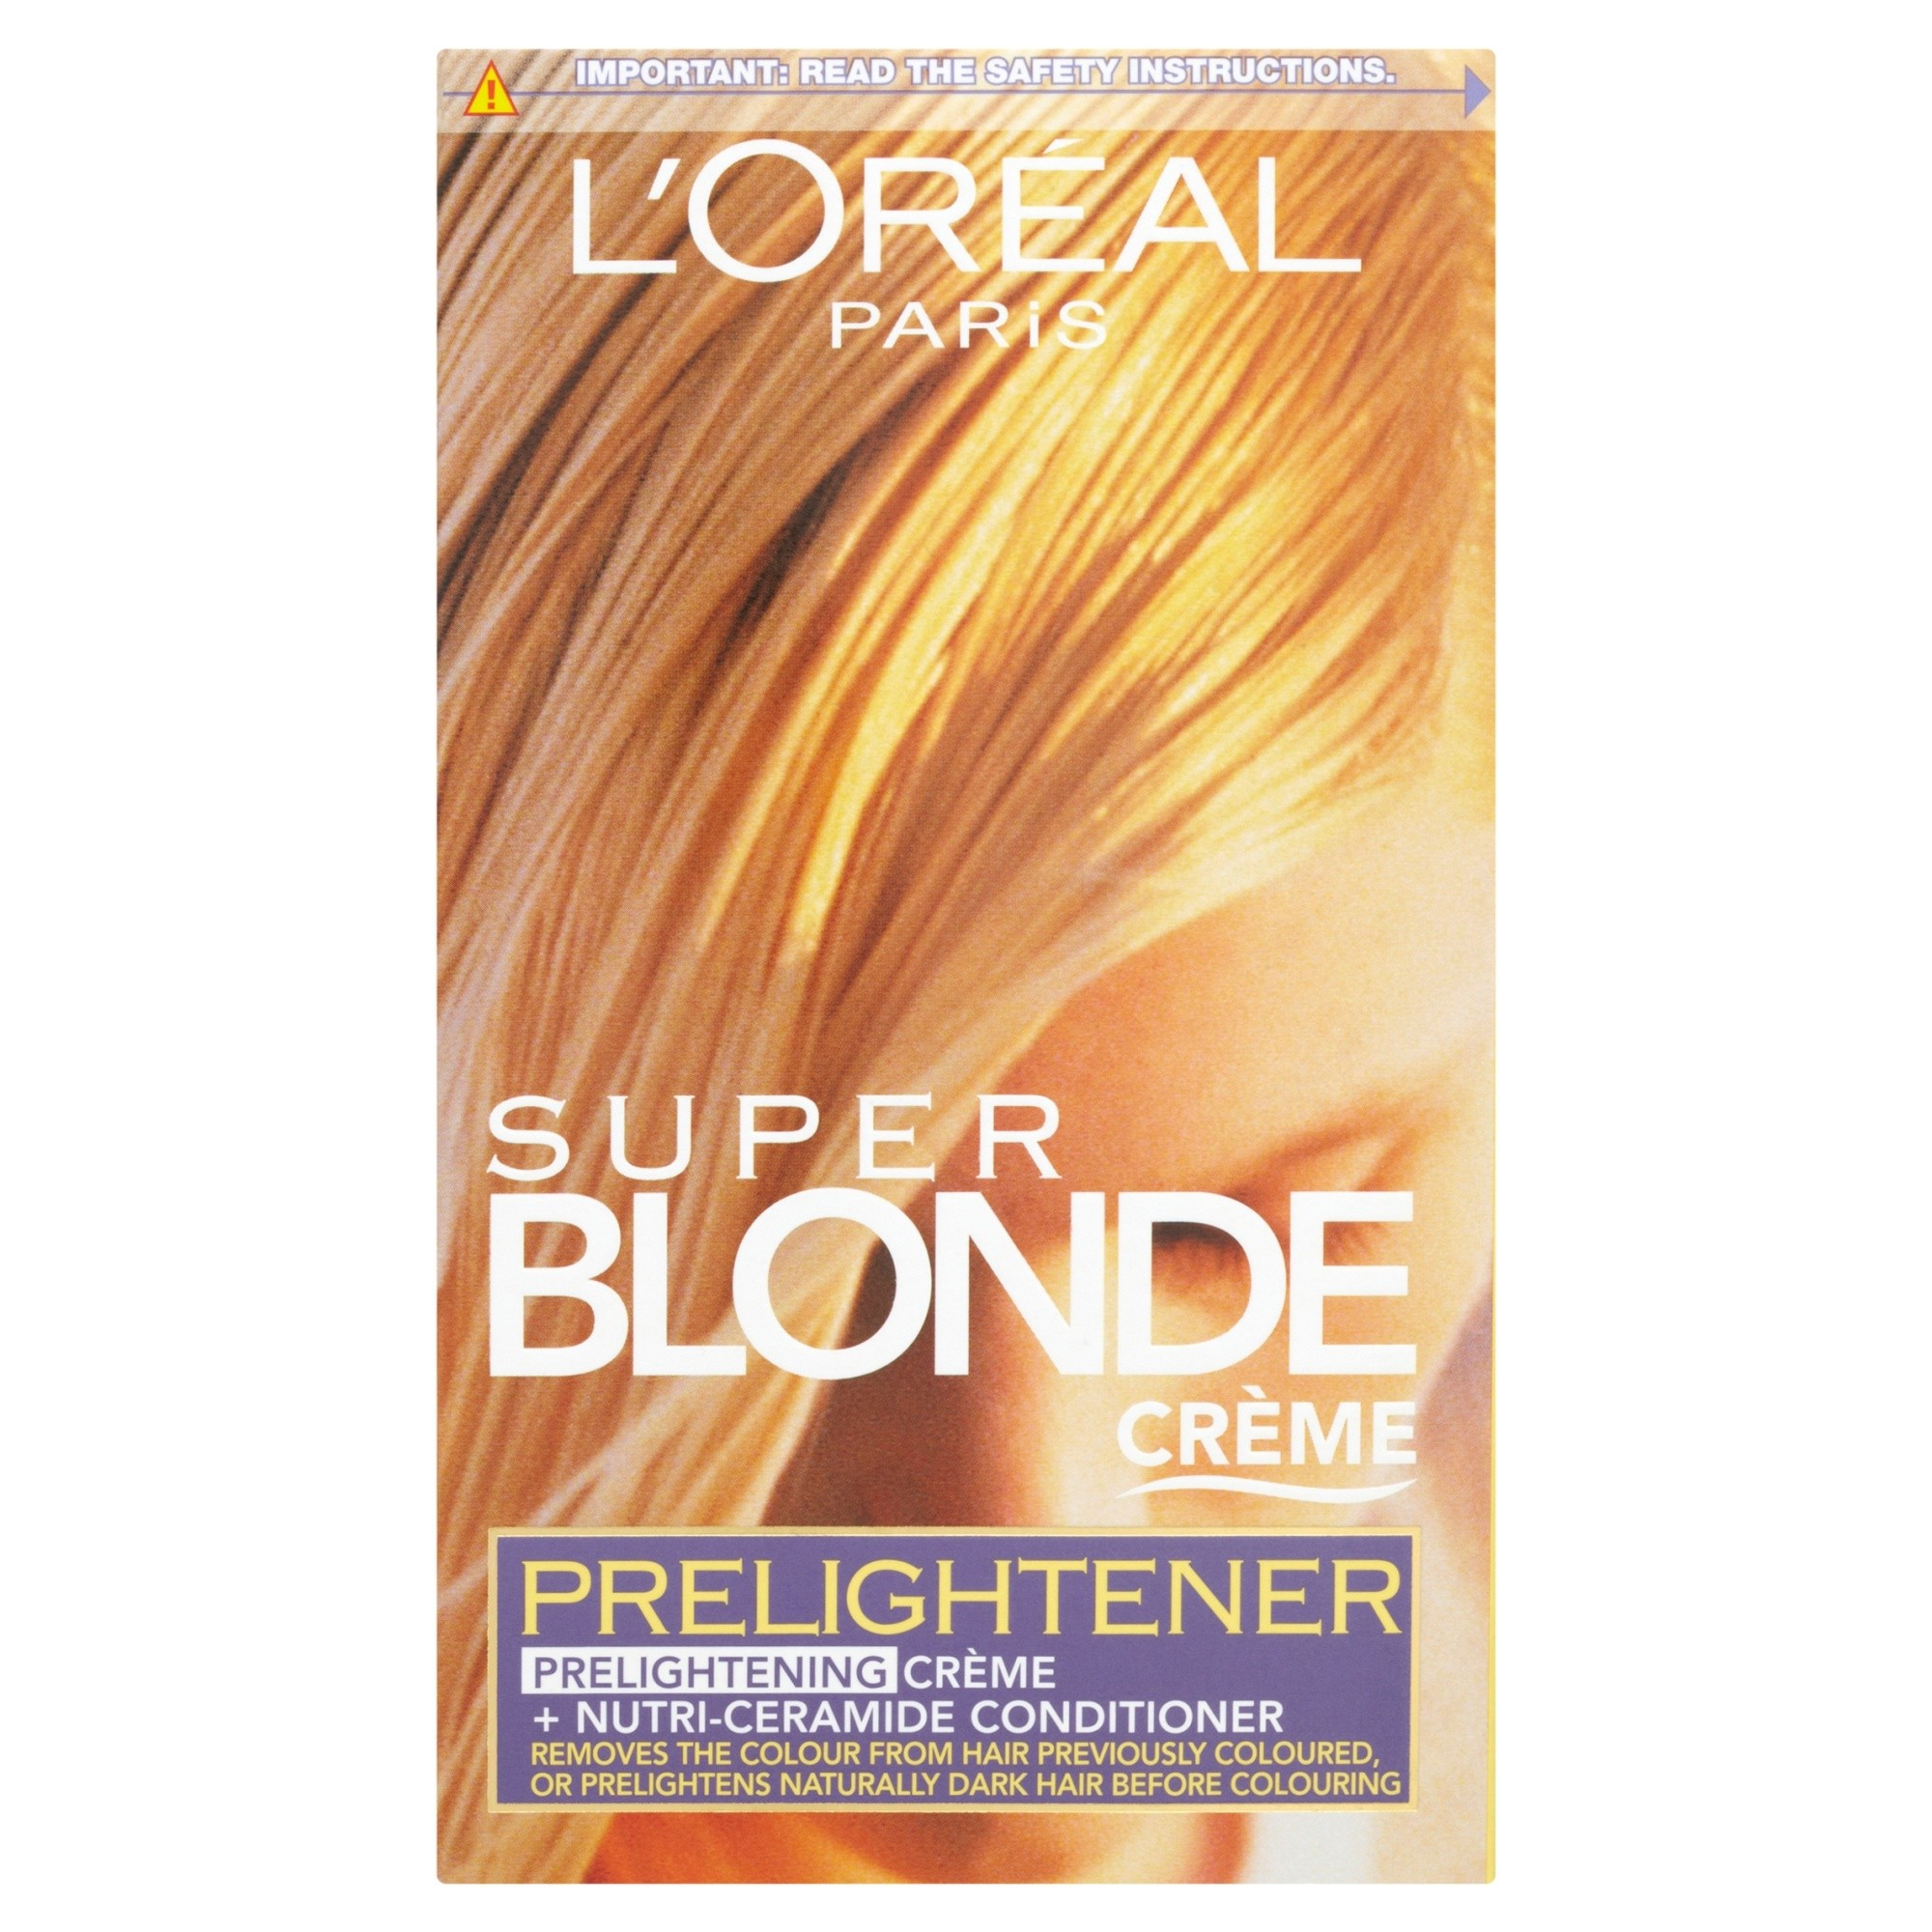 LOreal Paris Super Blonde Creme Hair Colour Prelightener